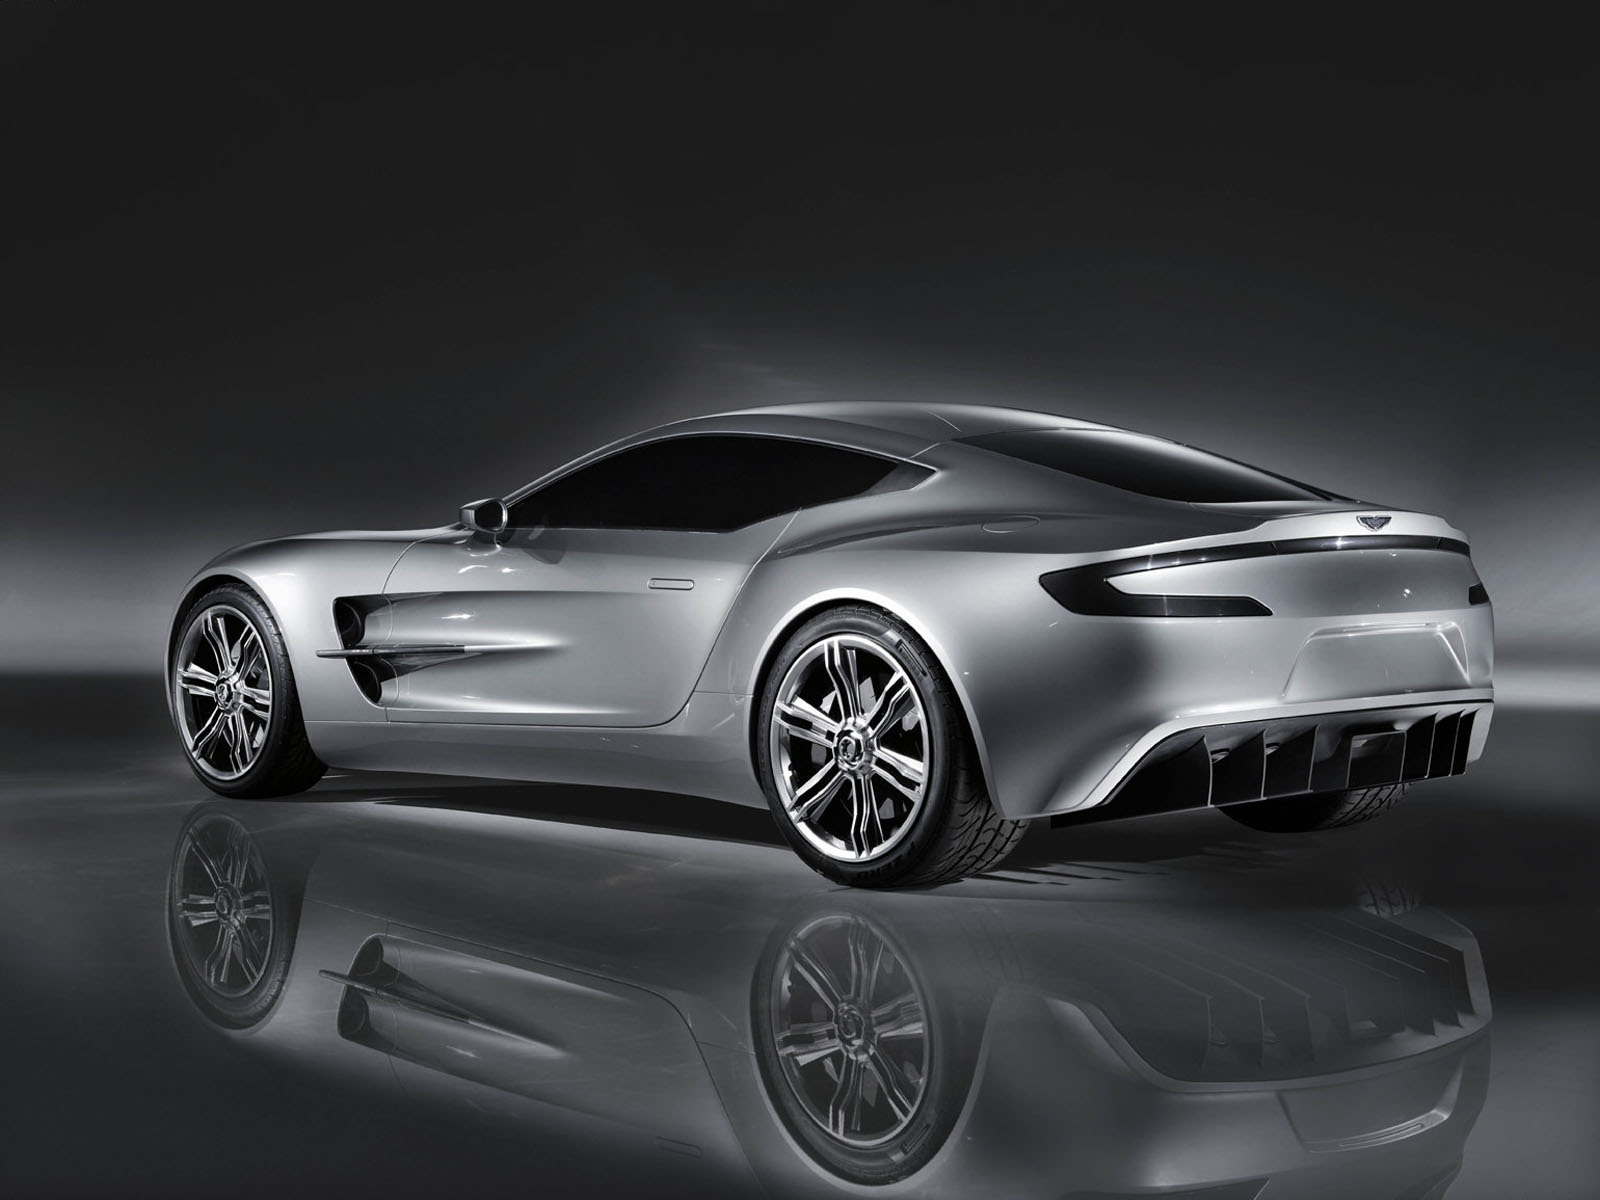 Aston Martin HD Wallpapers – wallpaper202